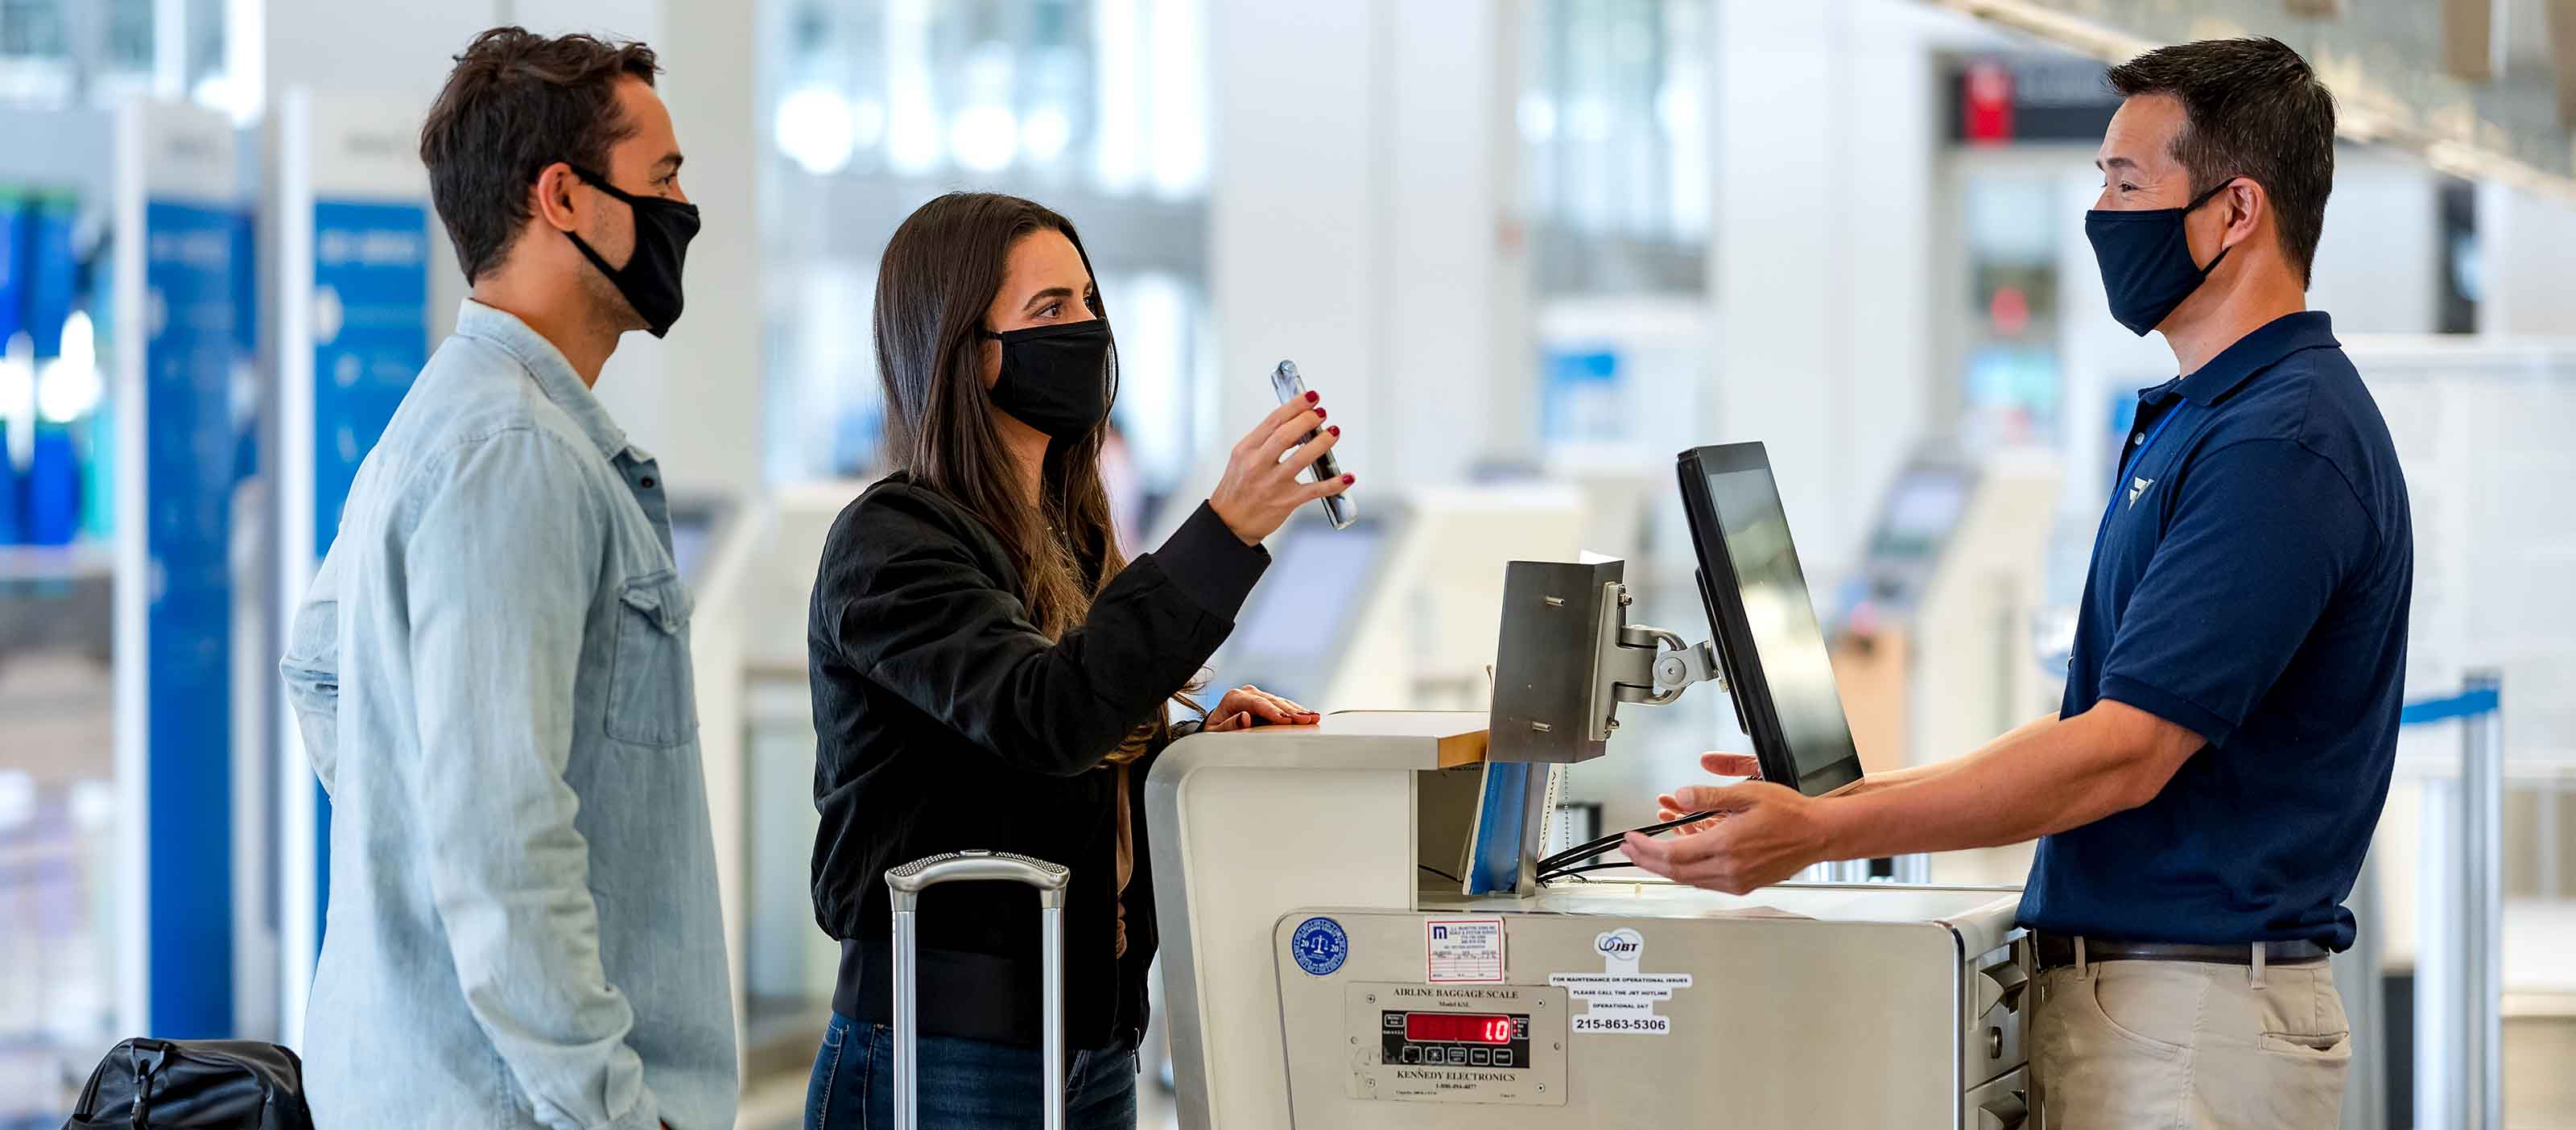 Wellness Trace software: Help travelers move with confidence | GE Digital